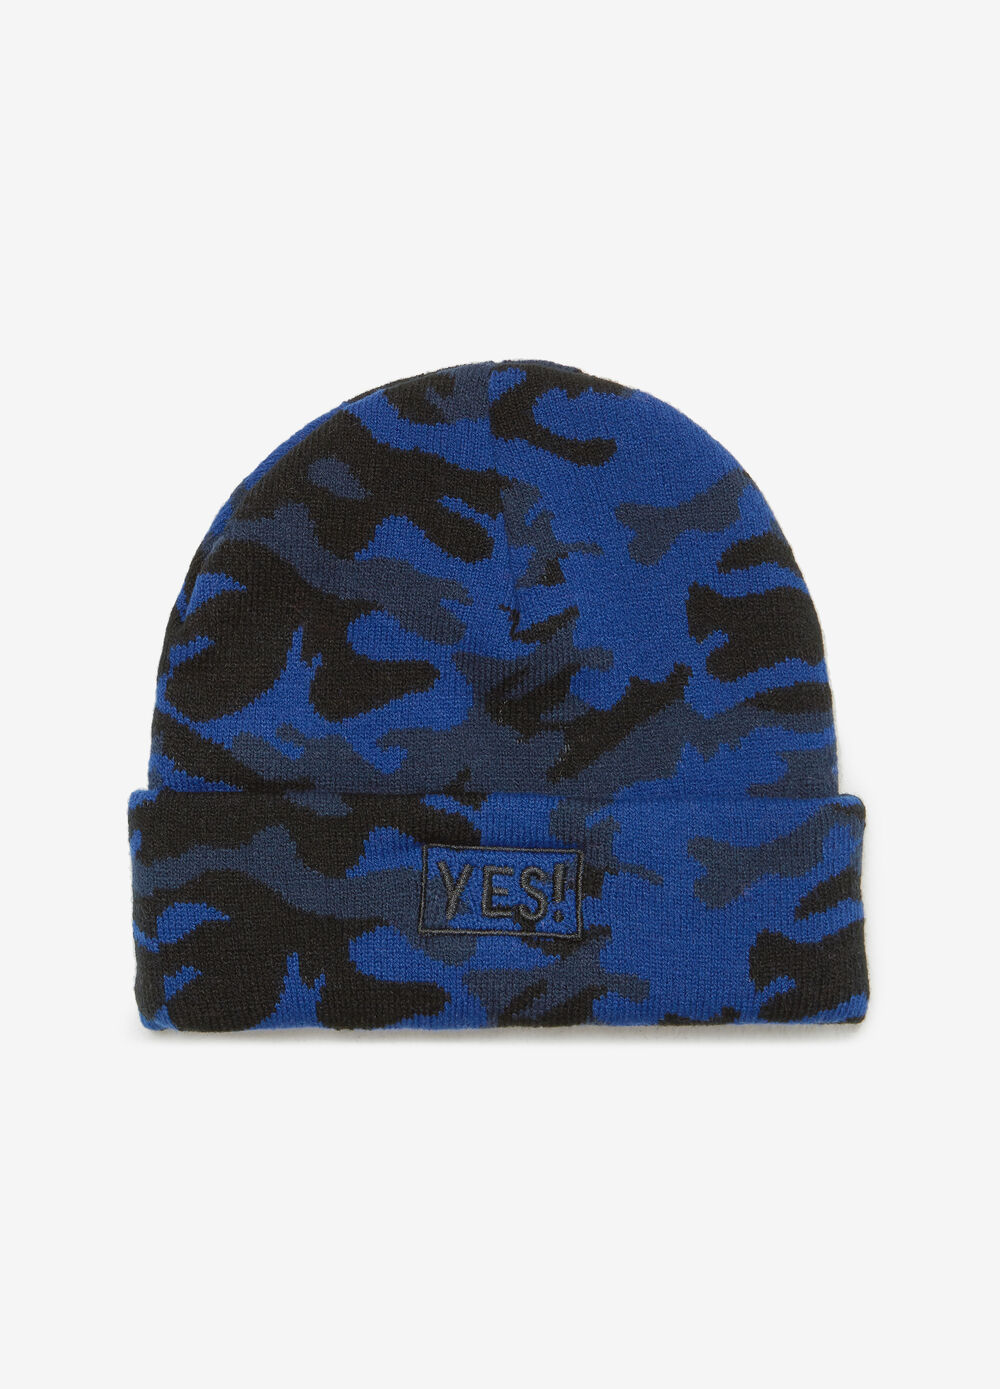 Beanie cap with camouflage embroidery